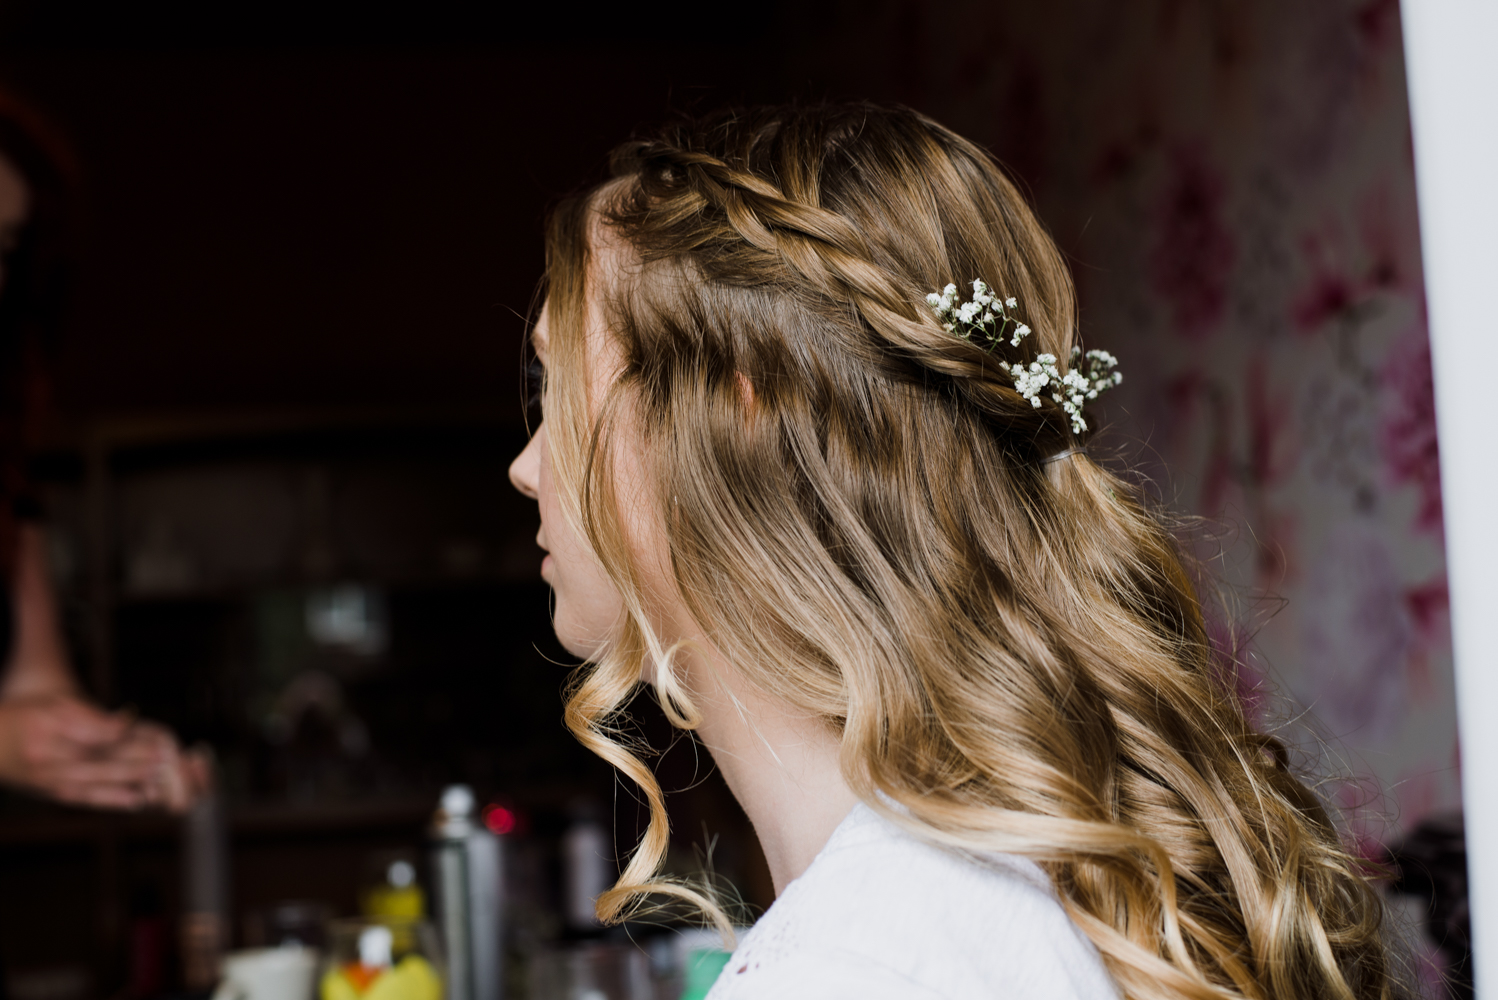 A detail photo of one of the bridesmaids hair